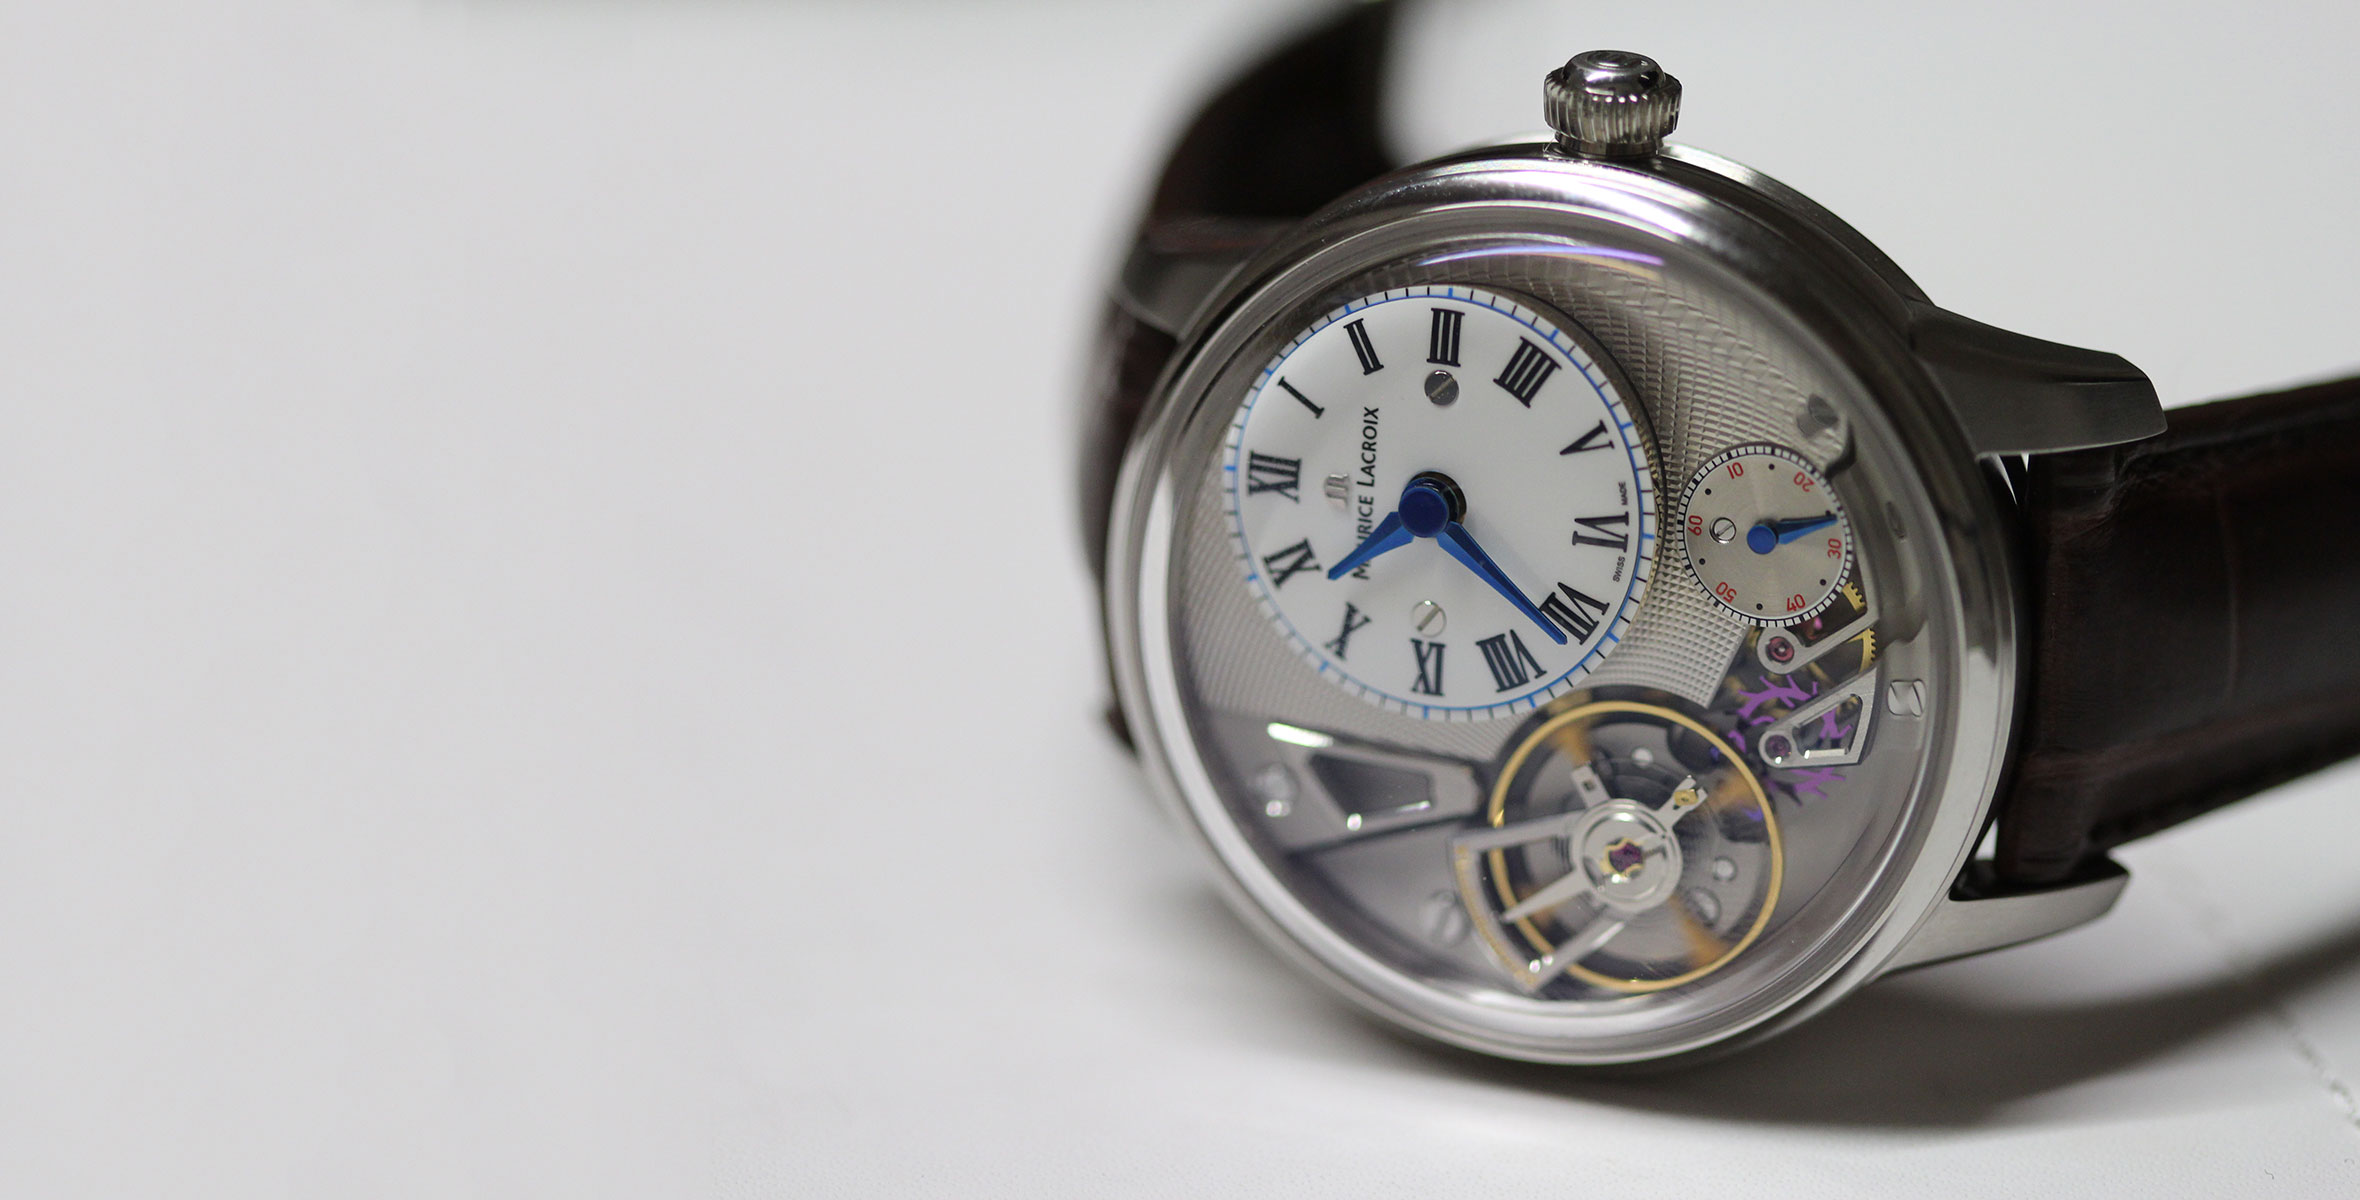 HANDS-ON: The Maurice Lacroix Gravity